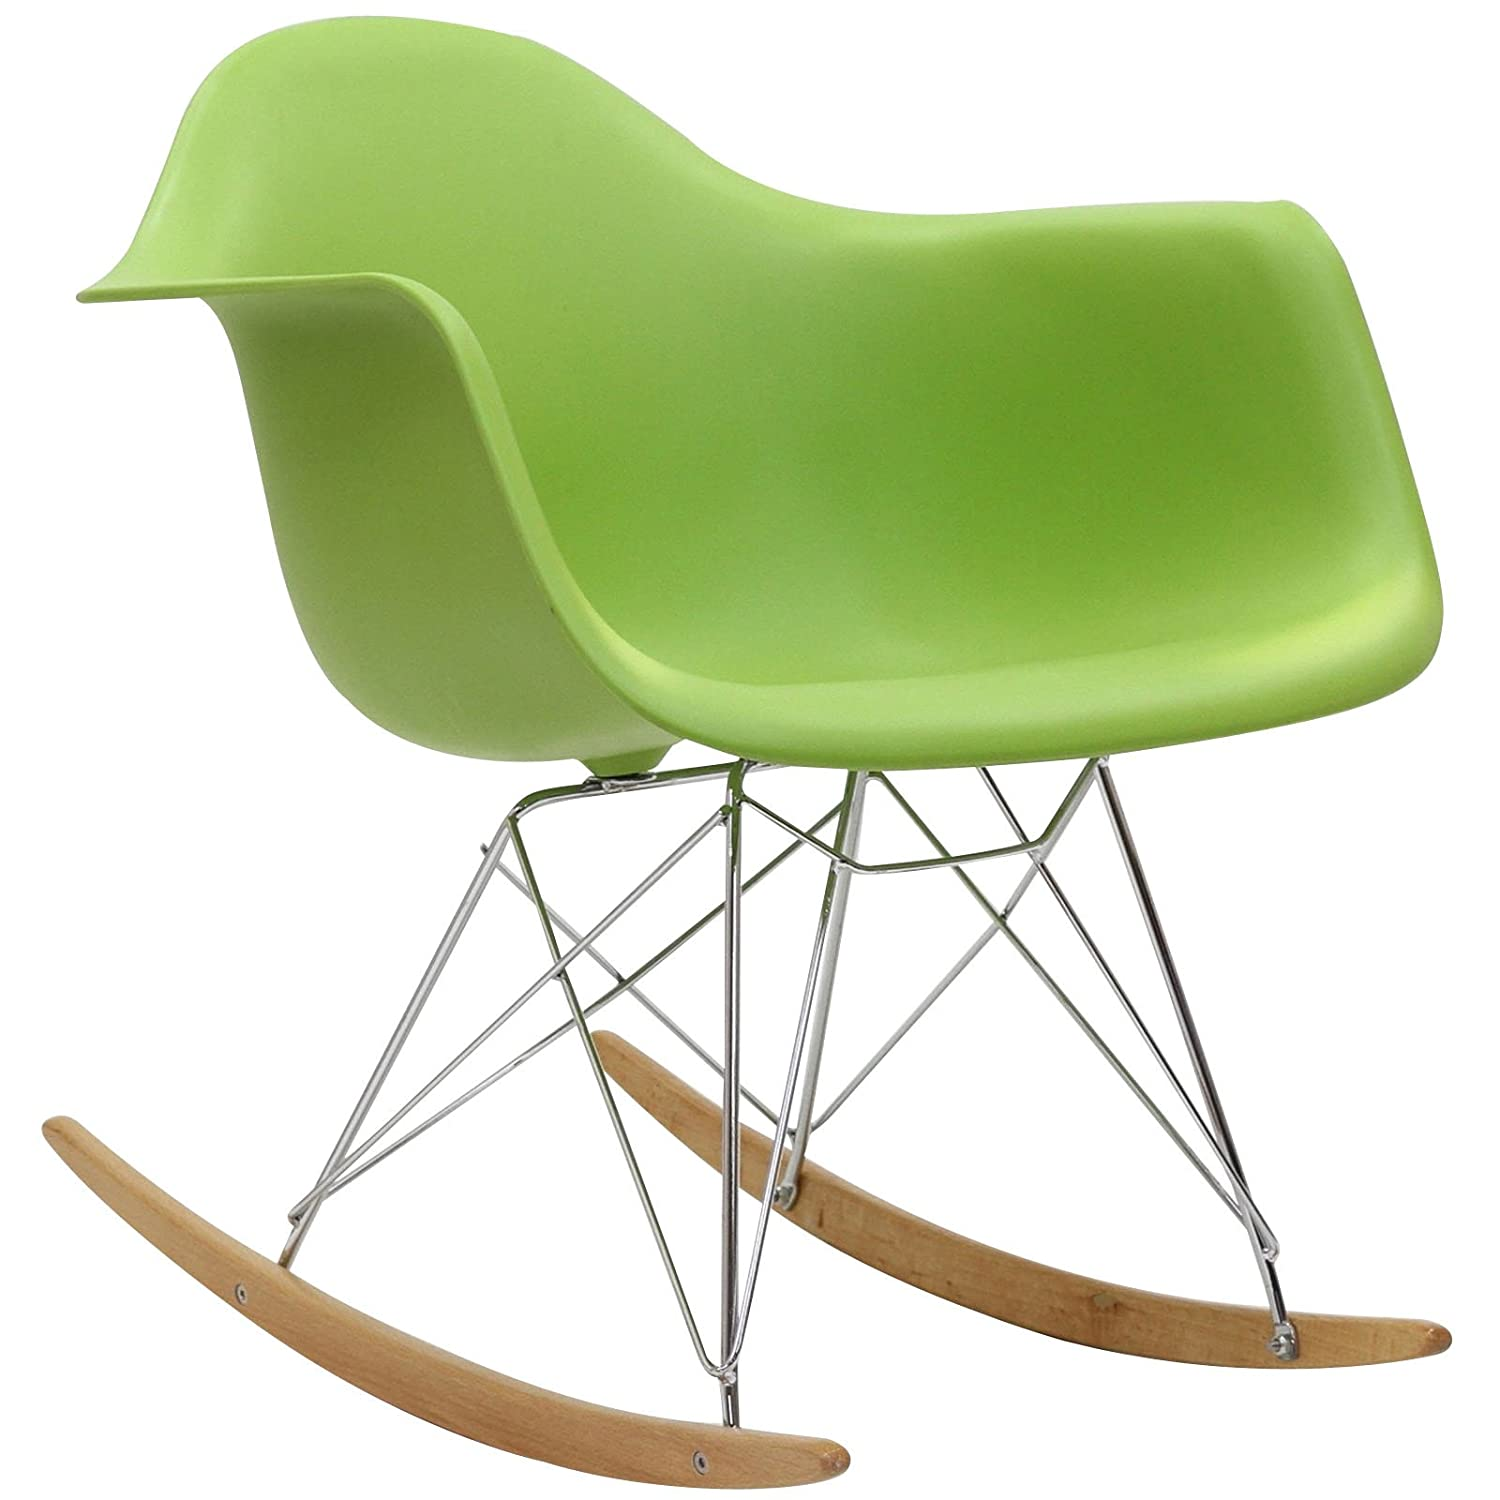 Amazon.com: Modway Molded Plastic Armchair Rocker In Green: Kitchen U0026 Dining